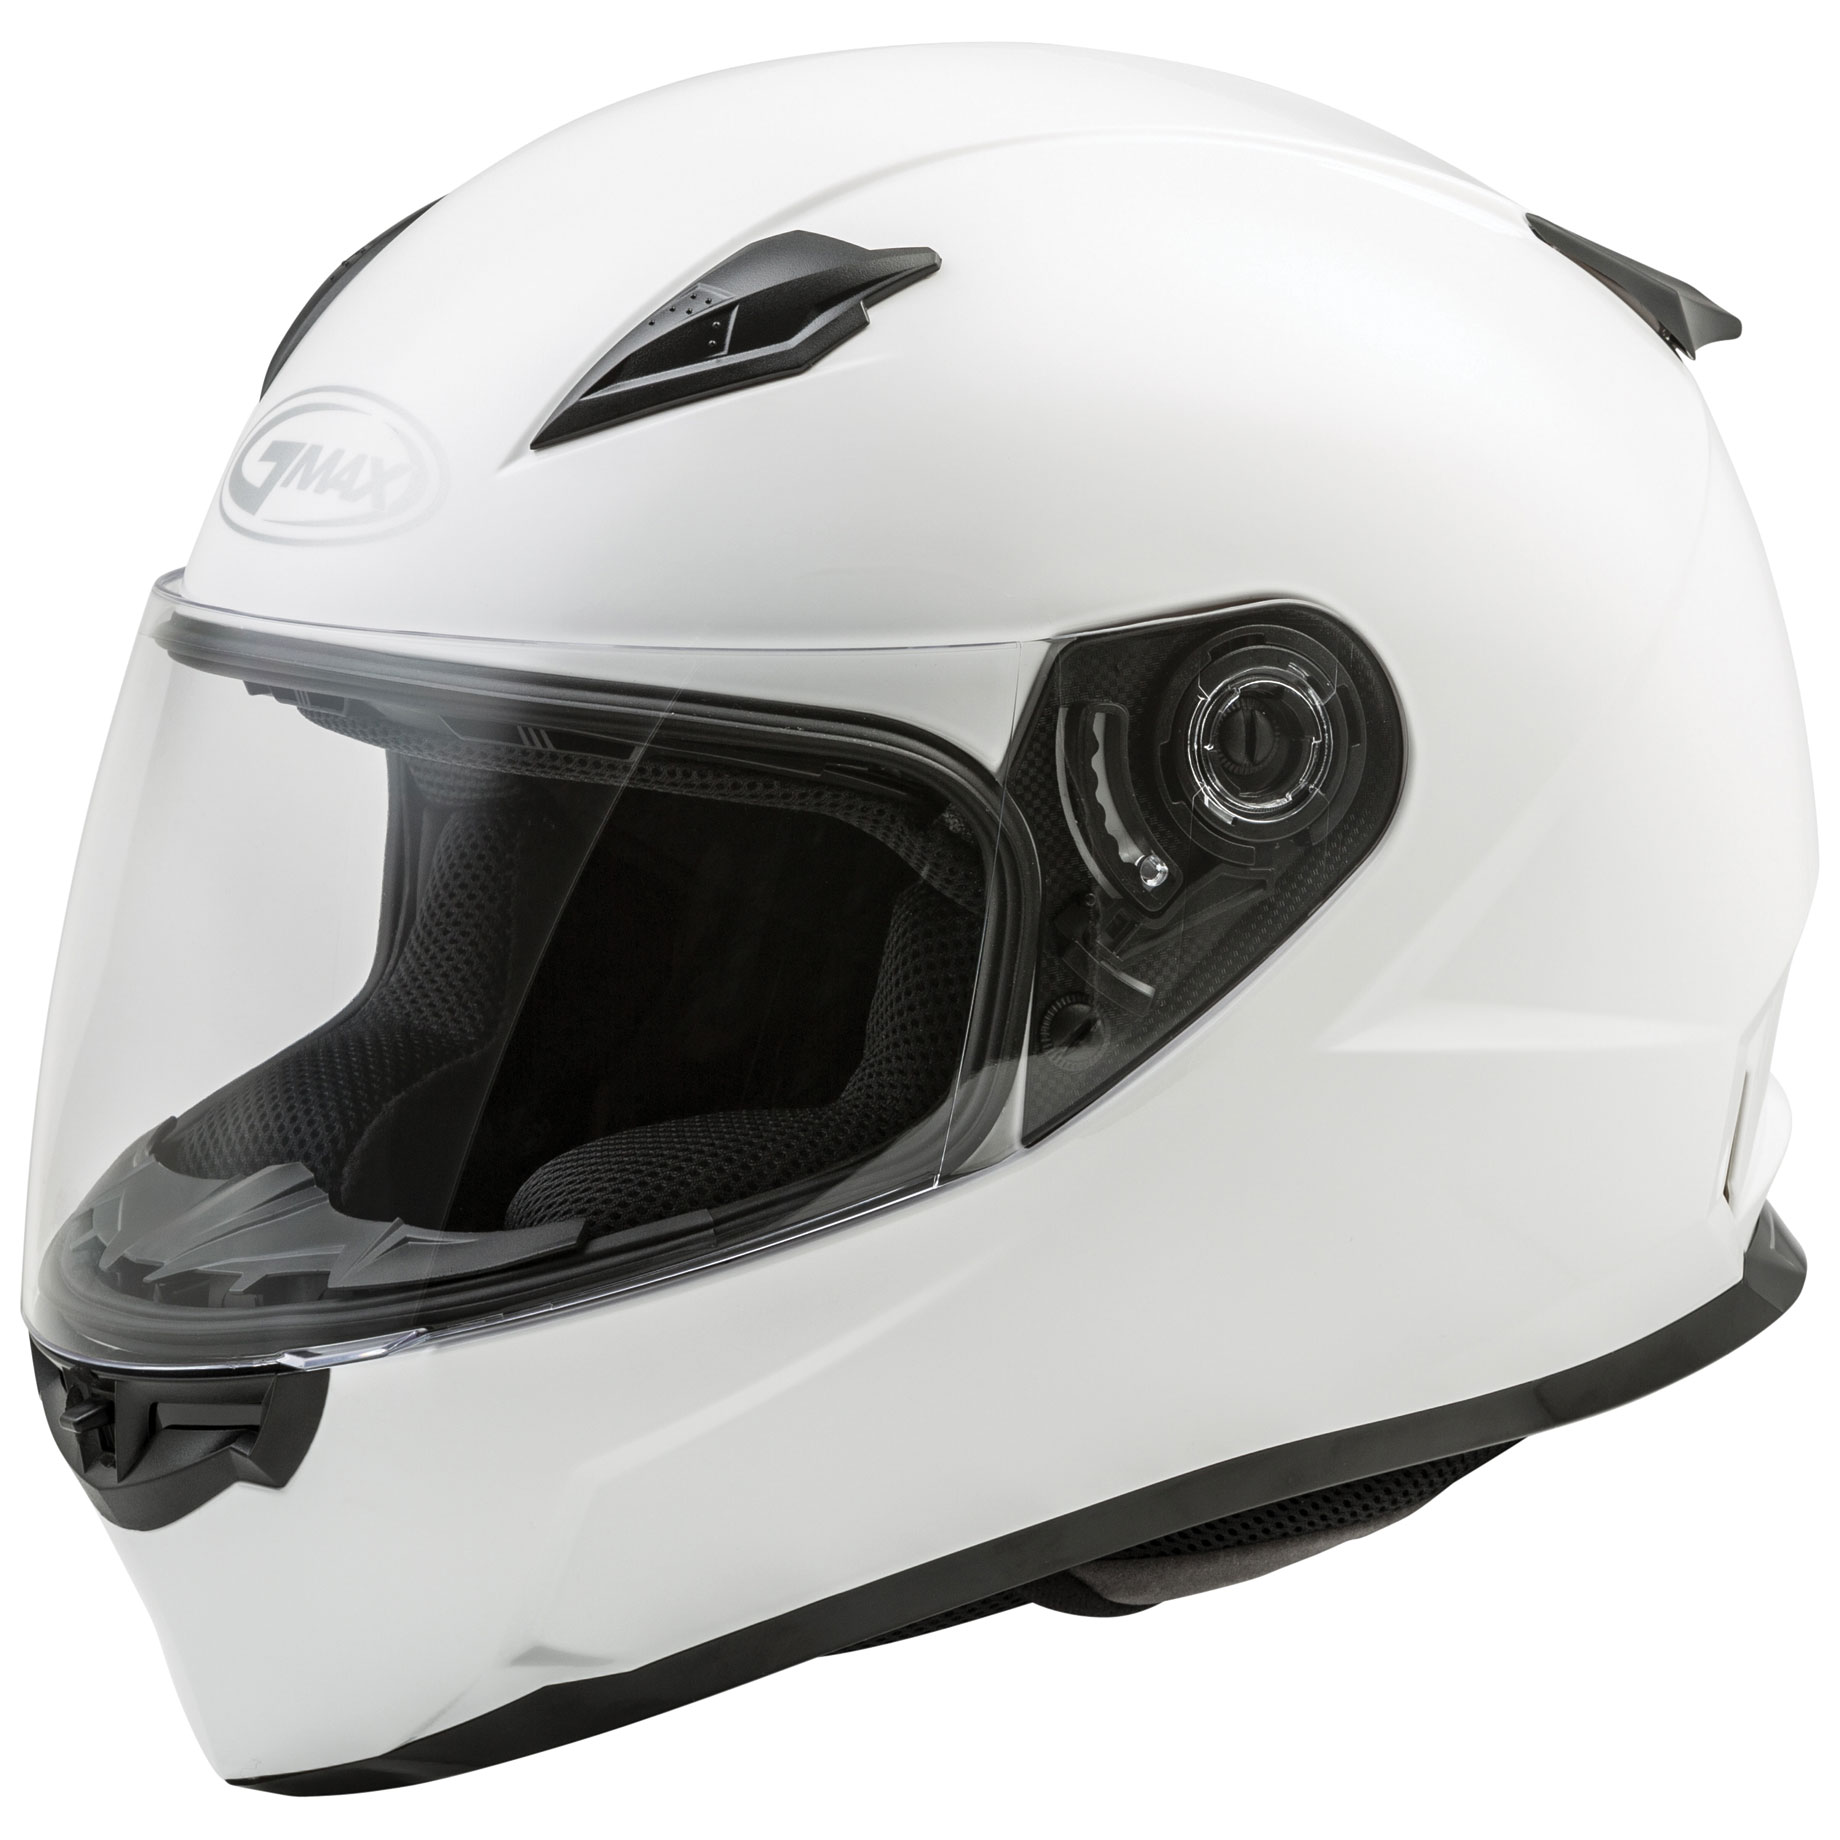 GMAX FF49 White Full Face Helmet